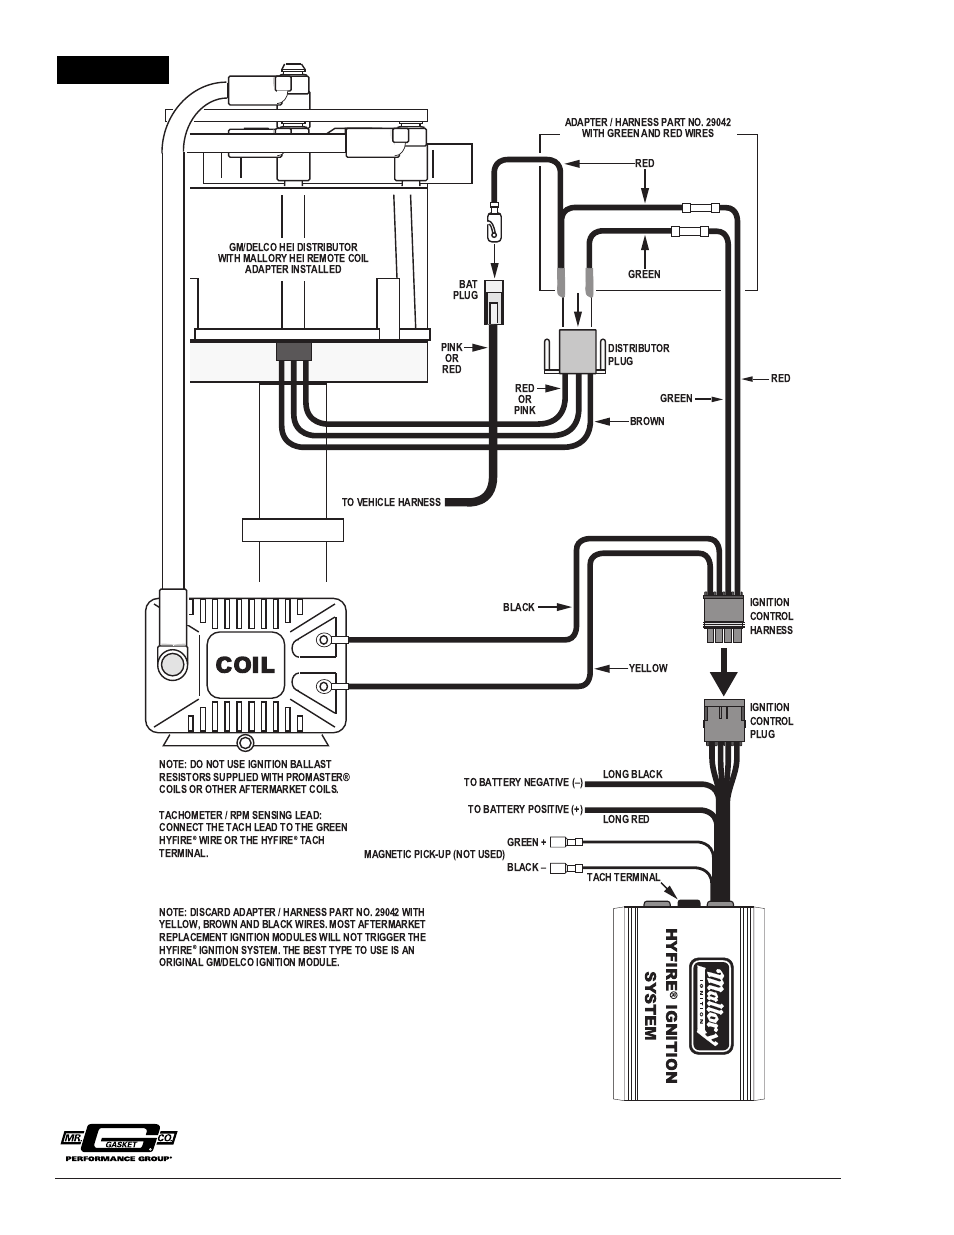 Mallory Promaster Coil Wiring Diagram Schematics 29440 Ignition Box Schematic Diagrams Electronic Wire 8548201 Hei